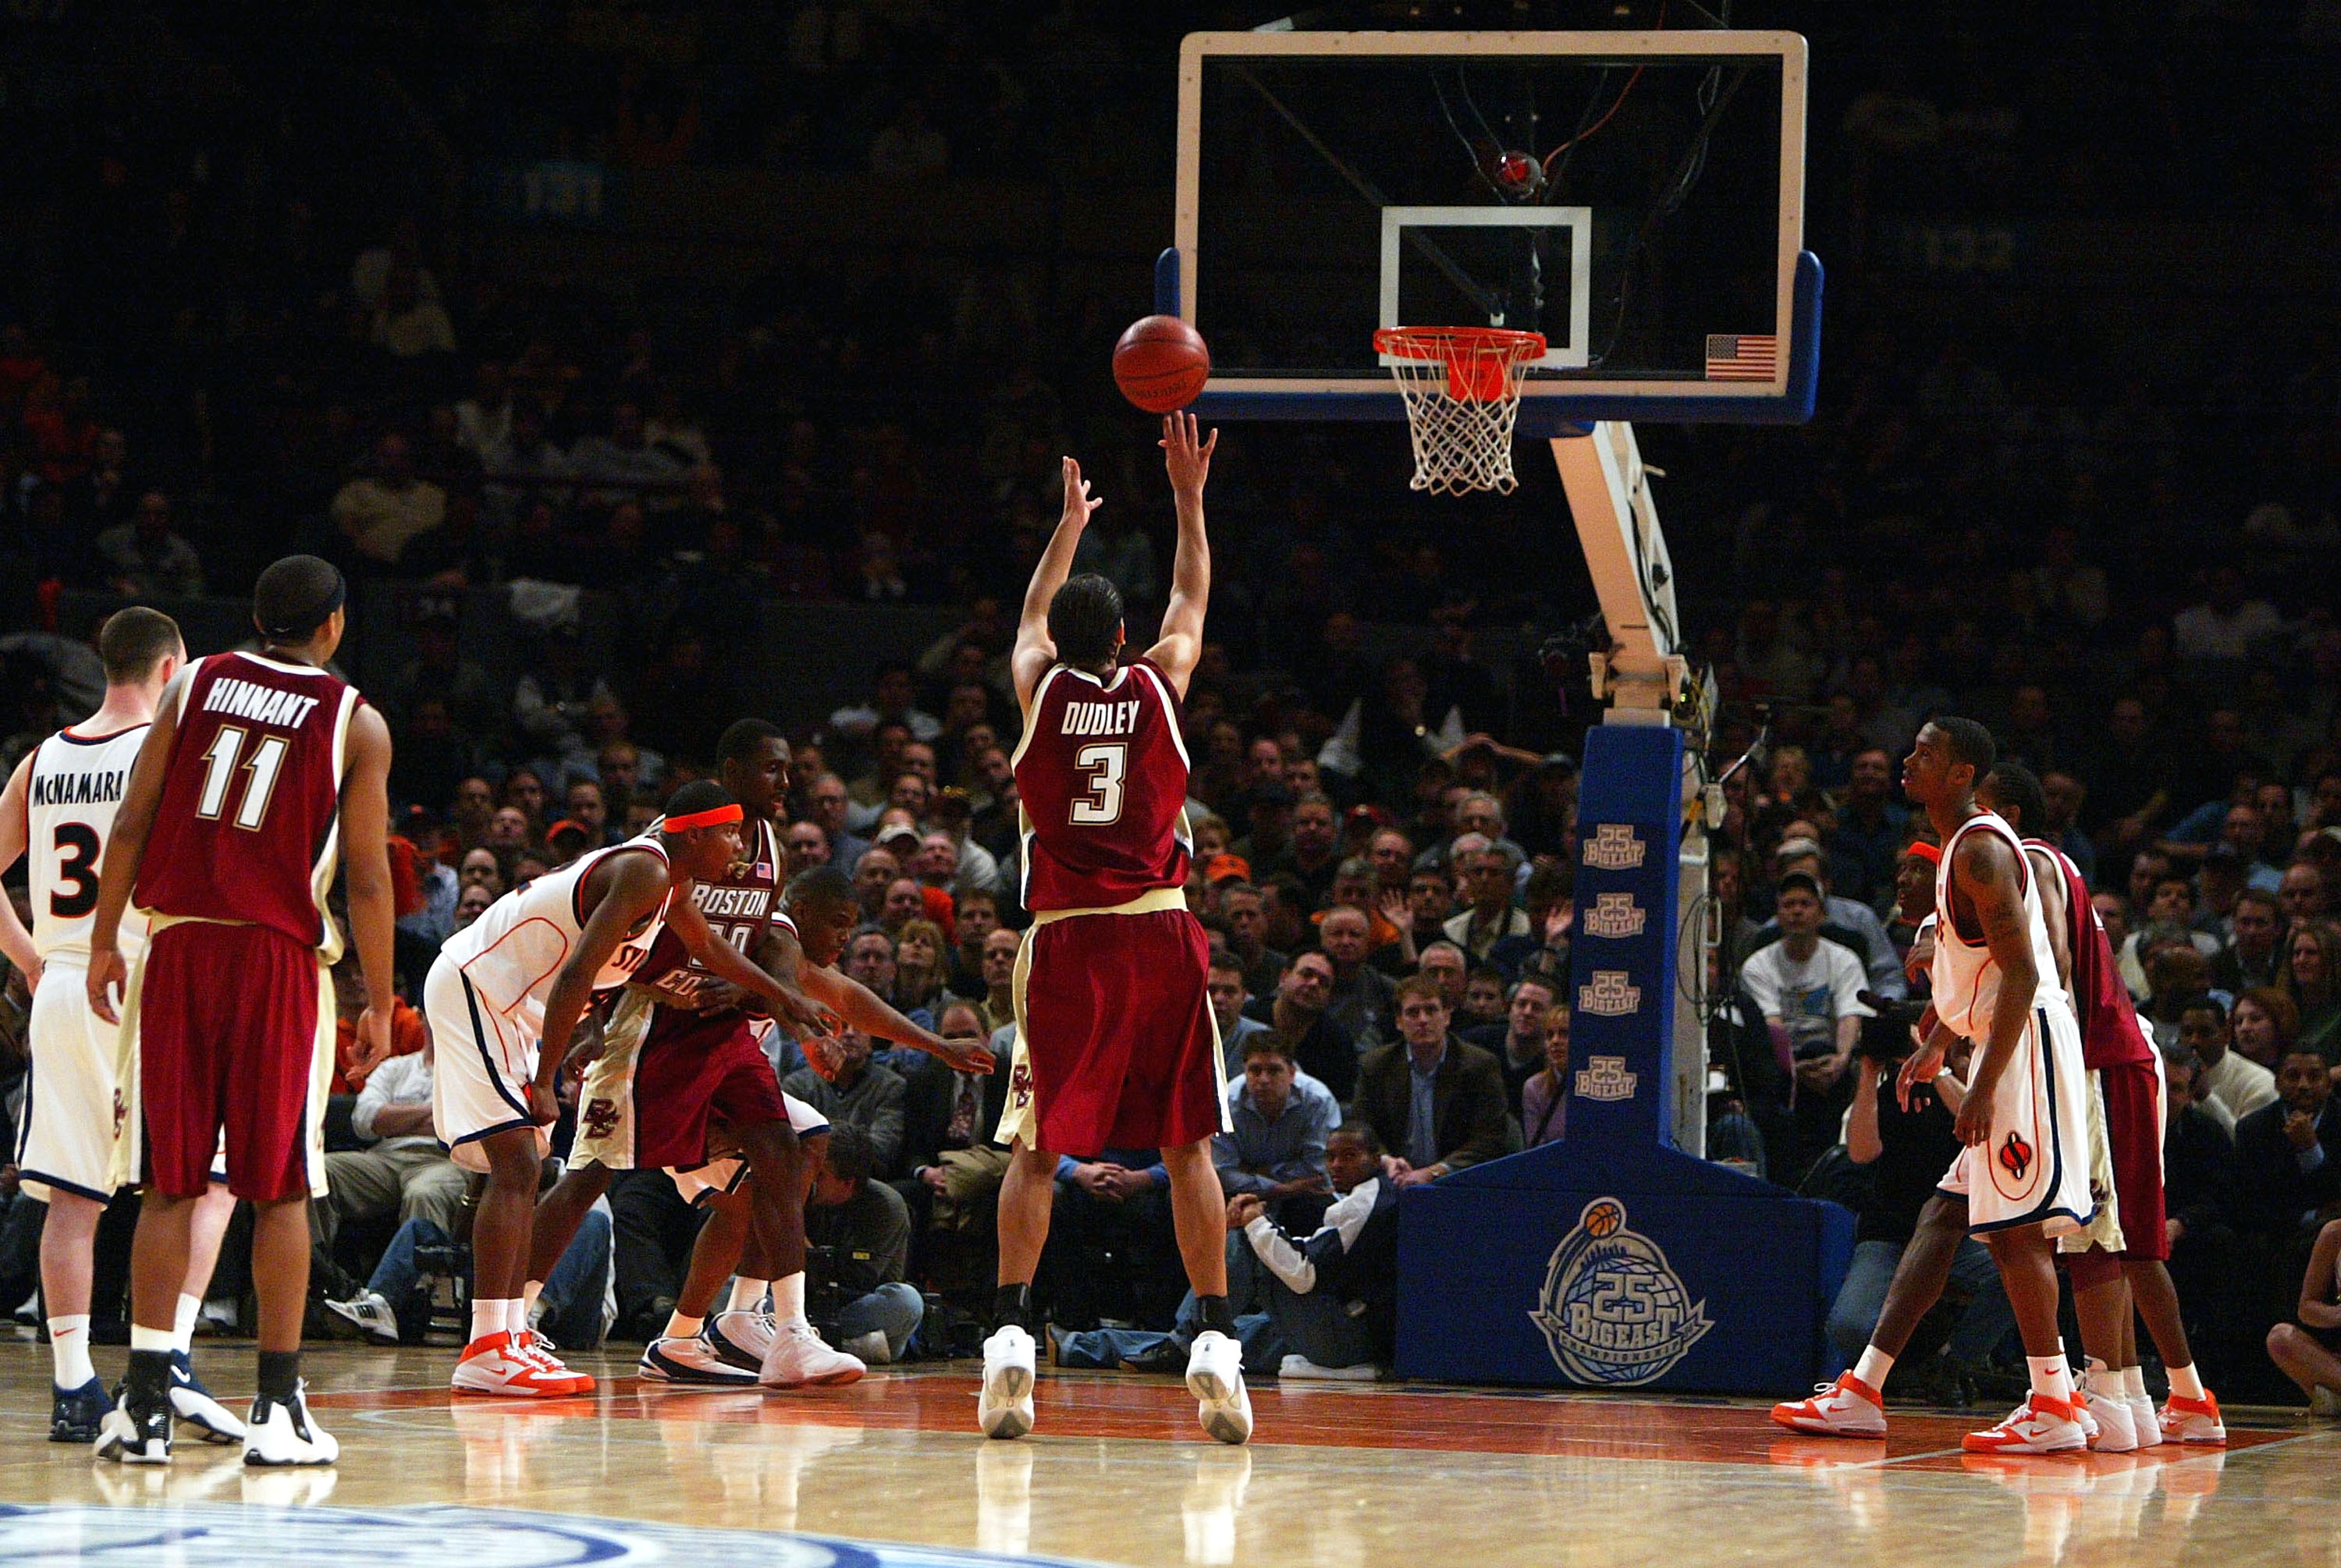 This free-throw shooting form enabled Boston College's Jared Dudley to make 18 free throws in 21 attempts against Wisconsin-Milwaukee. (Getty Images)